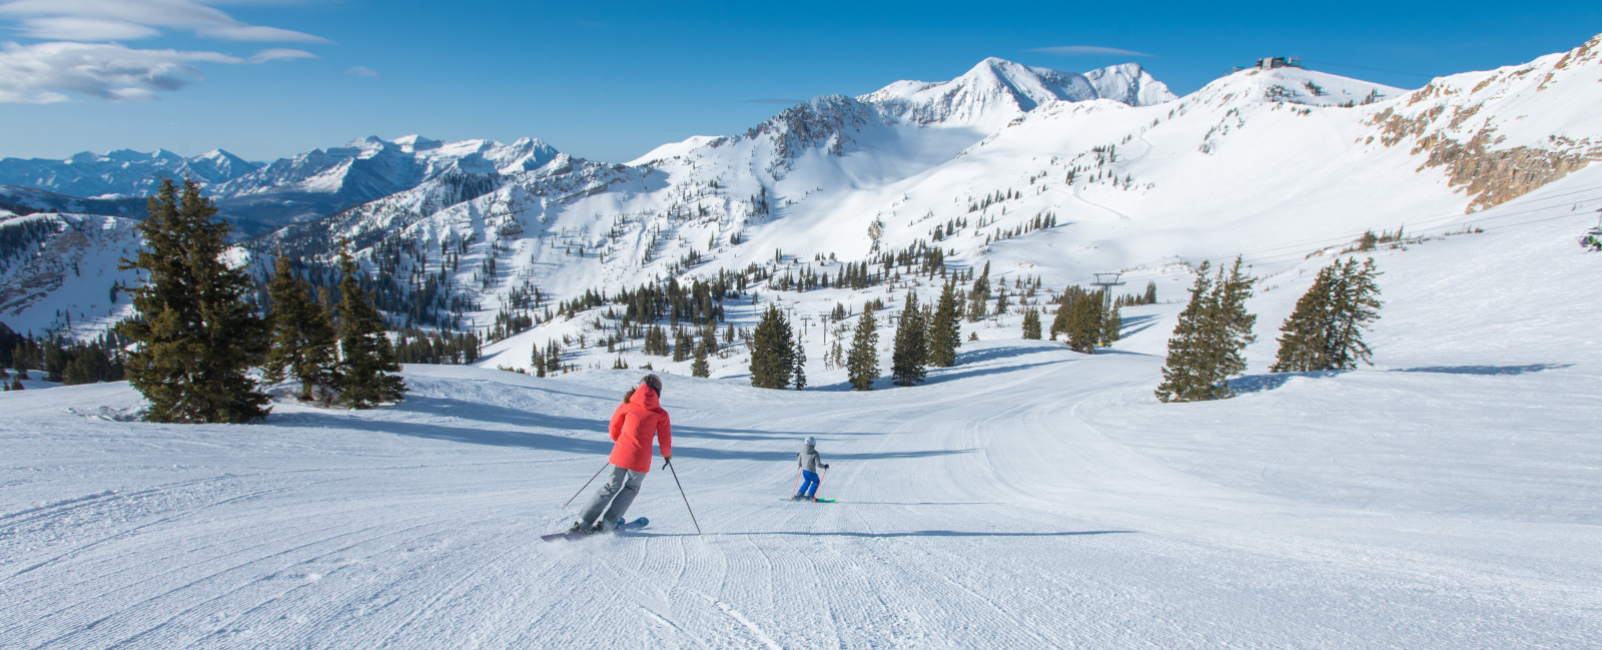 The Best Beginner and Intermediate Ski Runs in Utah